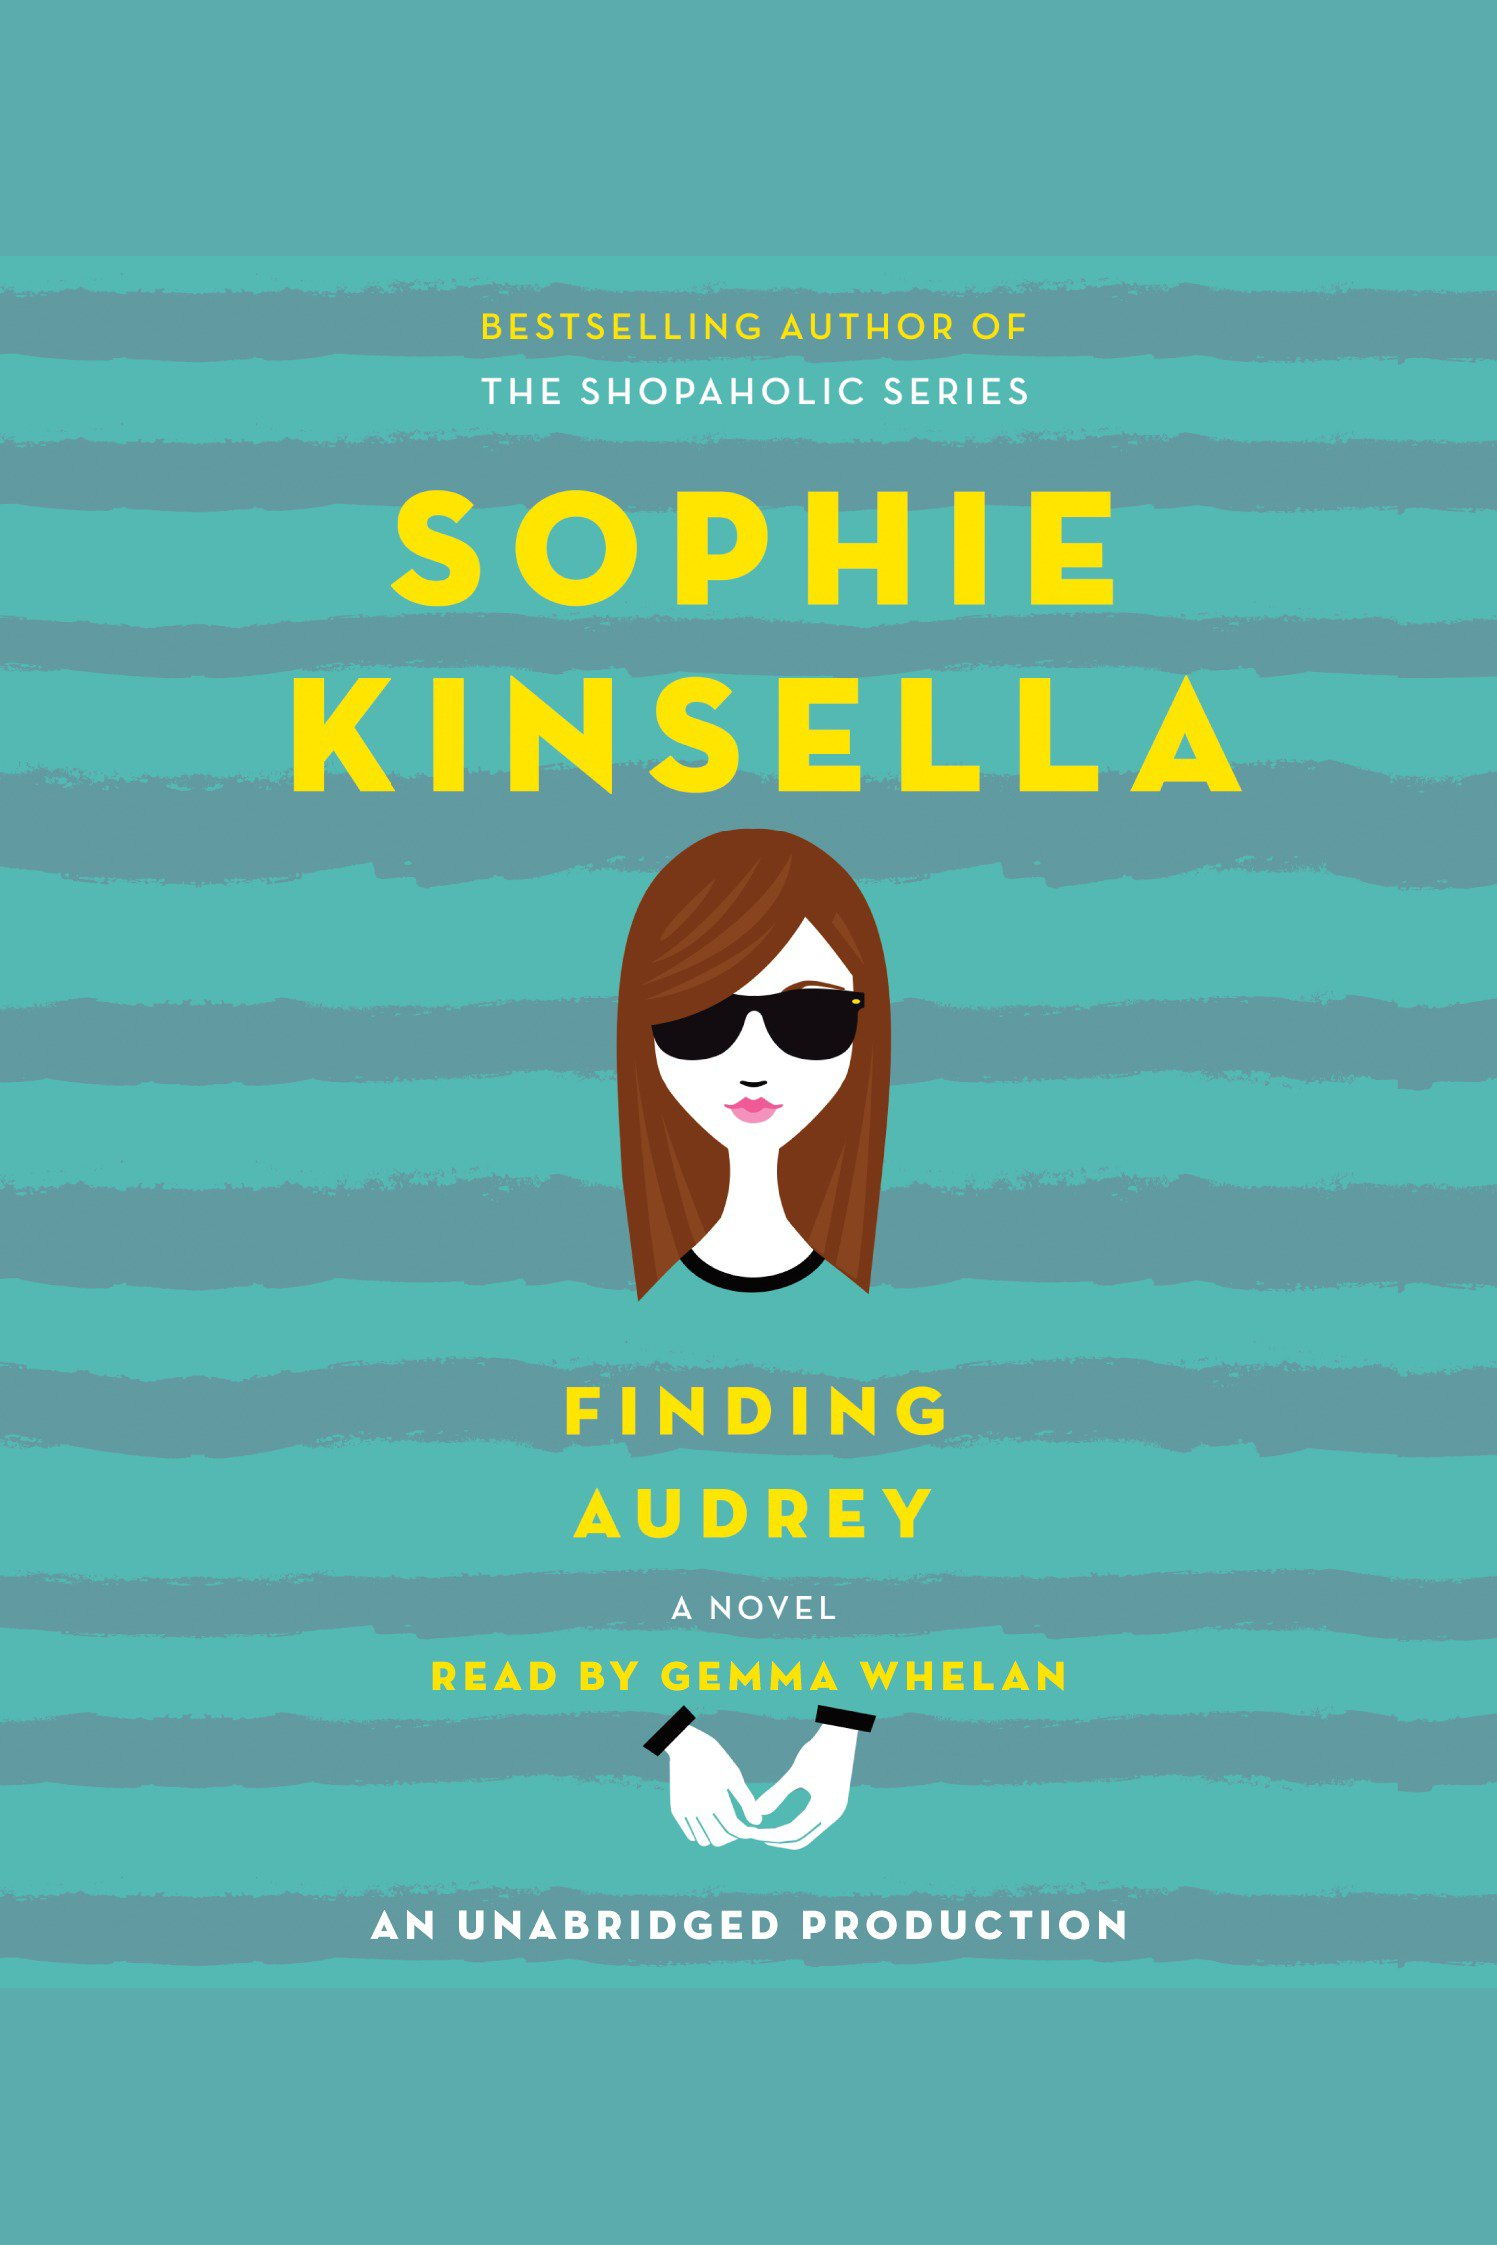 Finding Audrey A Novel